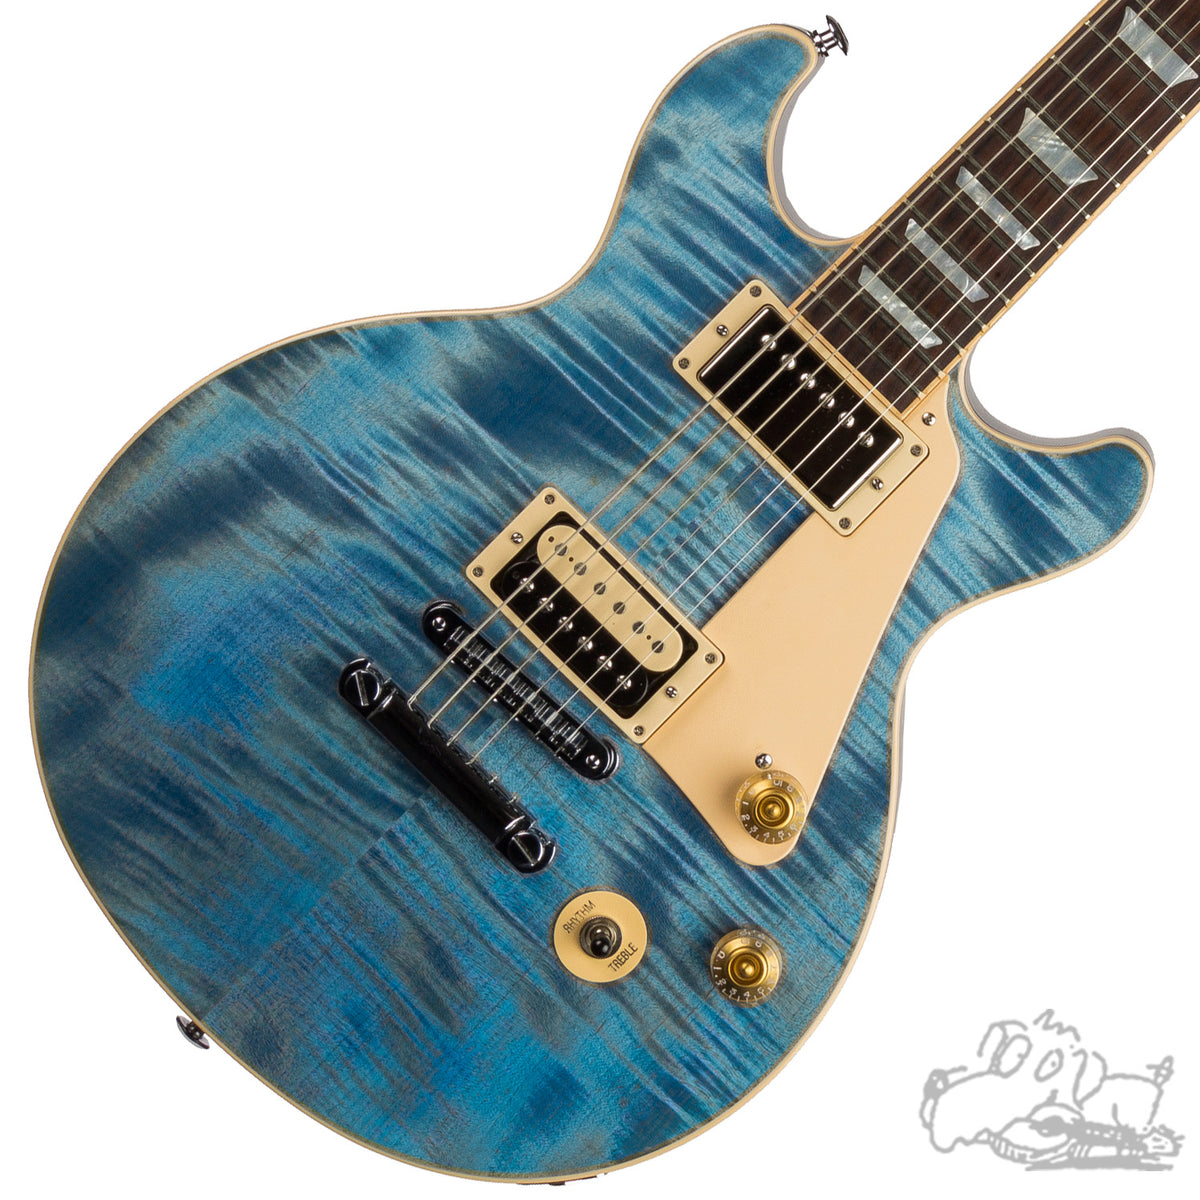 2016 Gibson Les Paul Double Cut In Ocean Blue